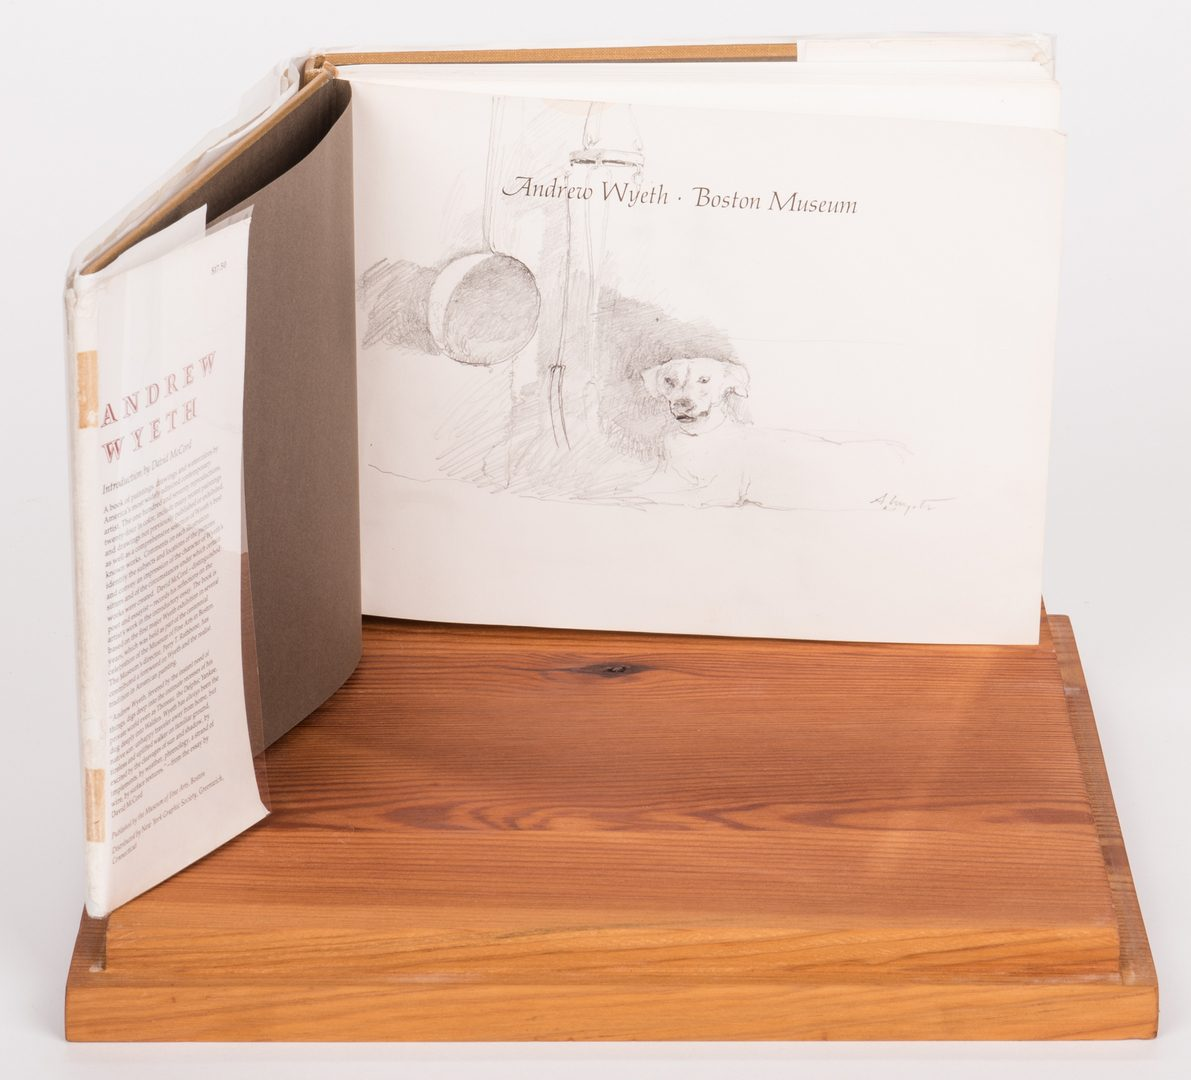 Lot 139: Andrew Wyeth Book w/ Authenticated Andrew Wyeth Sketch